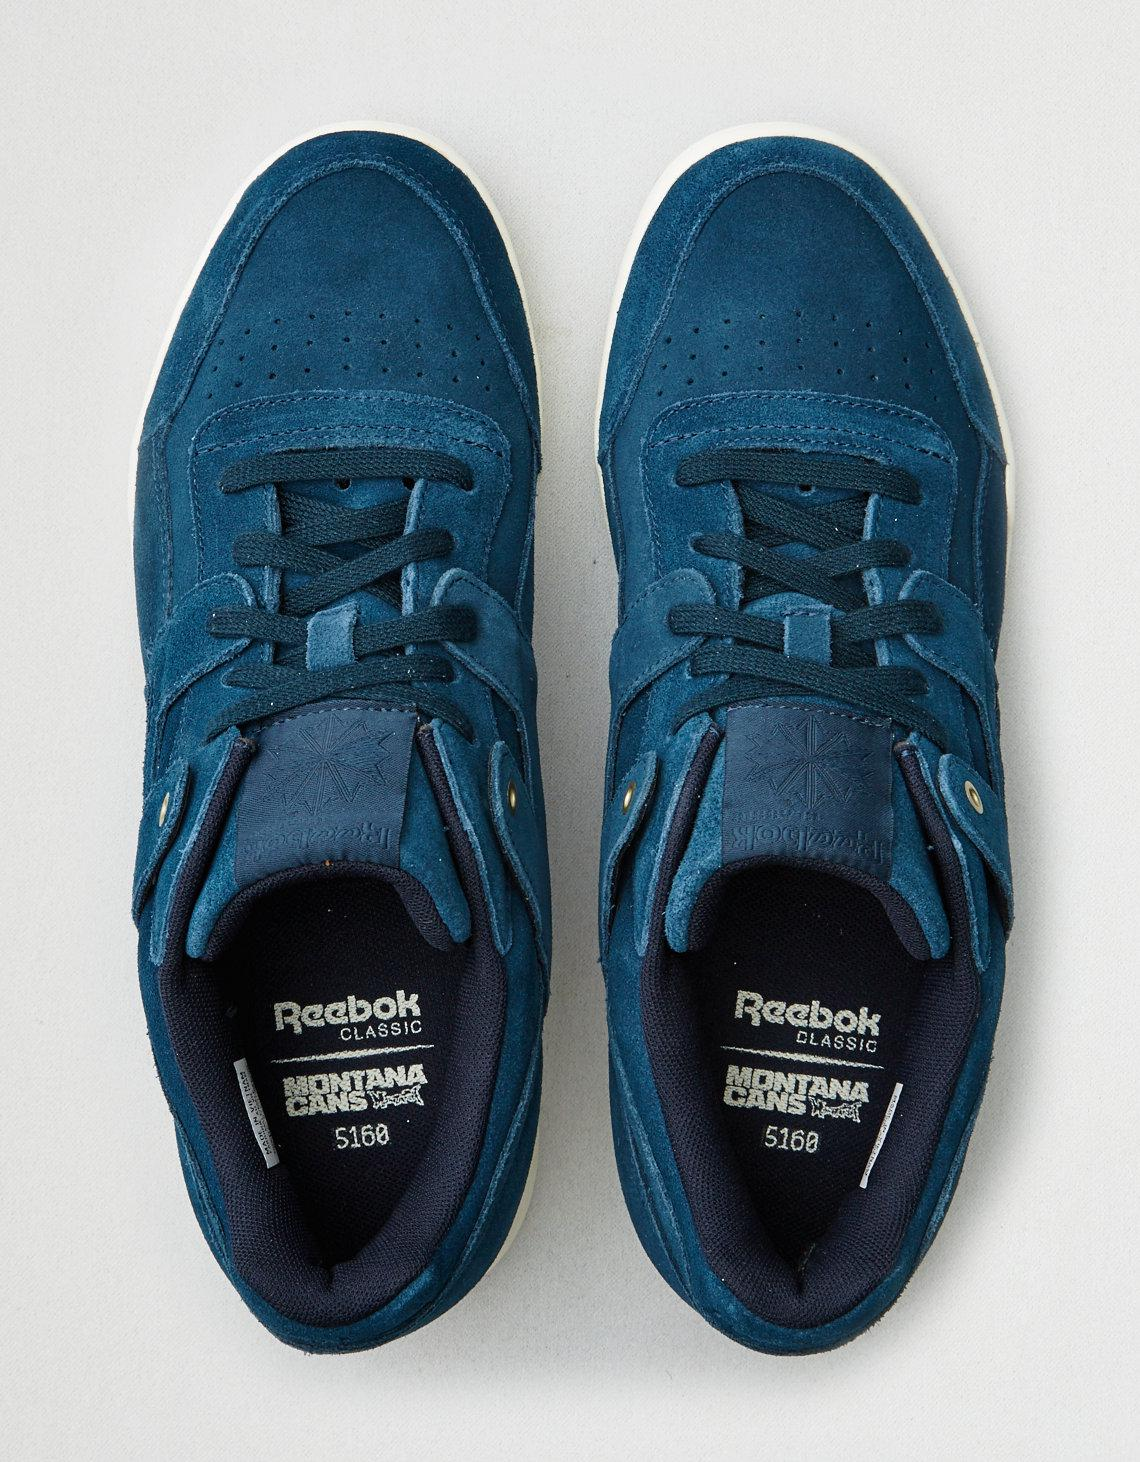 Lyst - American Eagle Reebok Workout Plus Sneaker in Blue for Men d5707a092